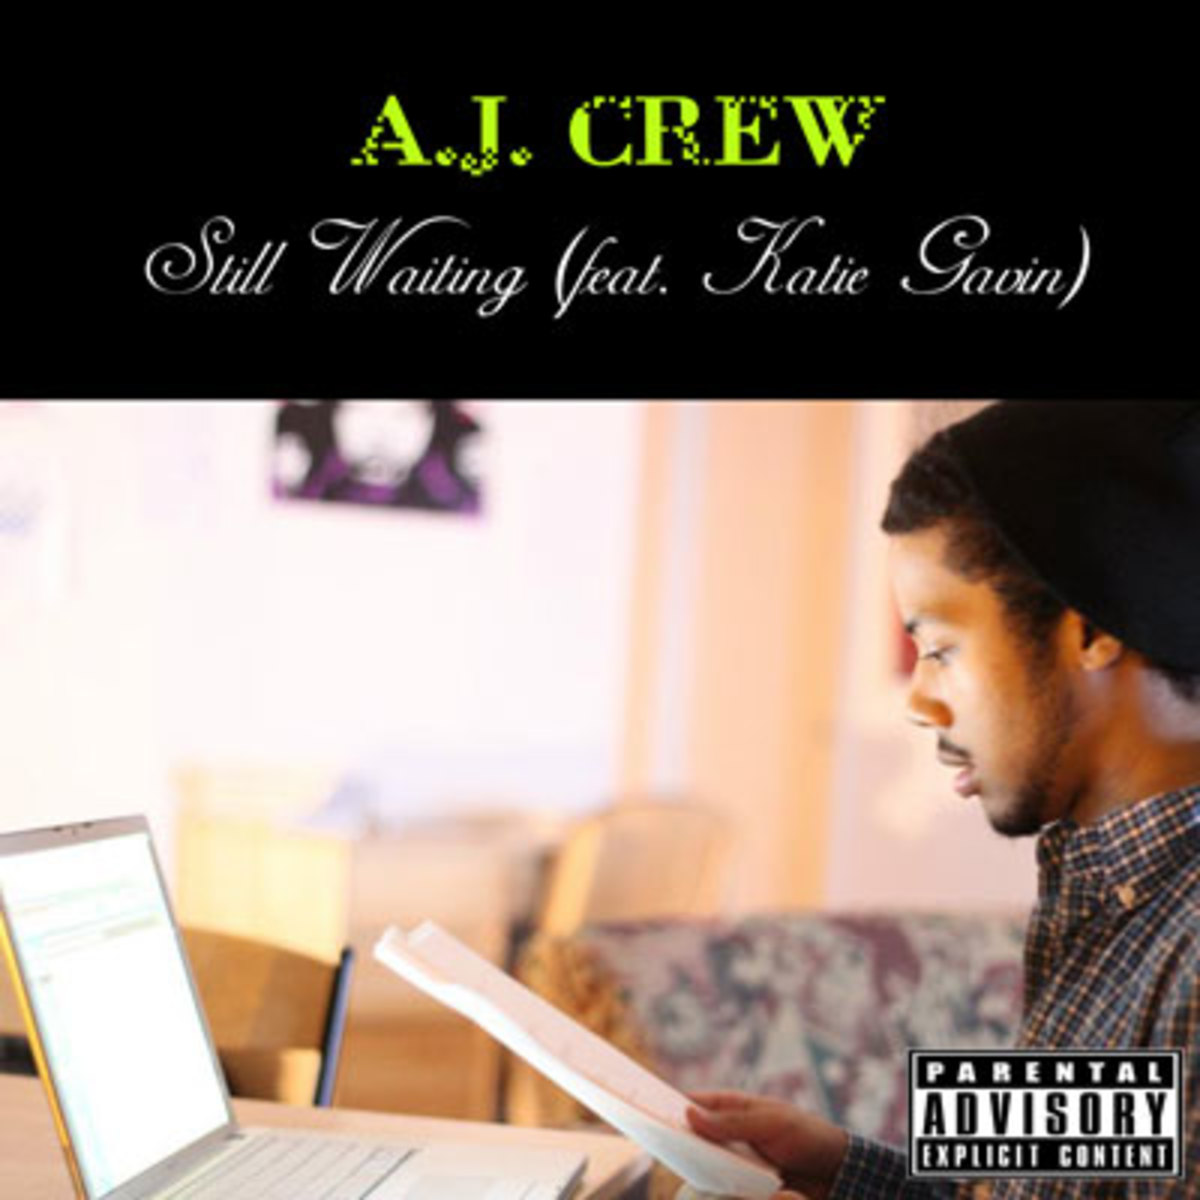 ajcrew-stillwaiting.jpg